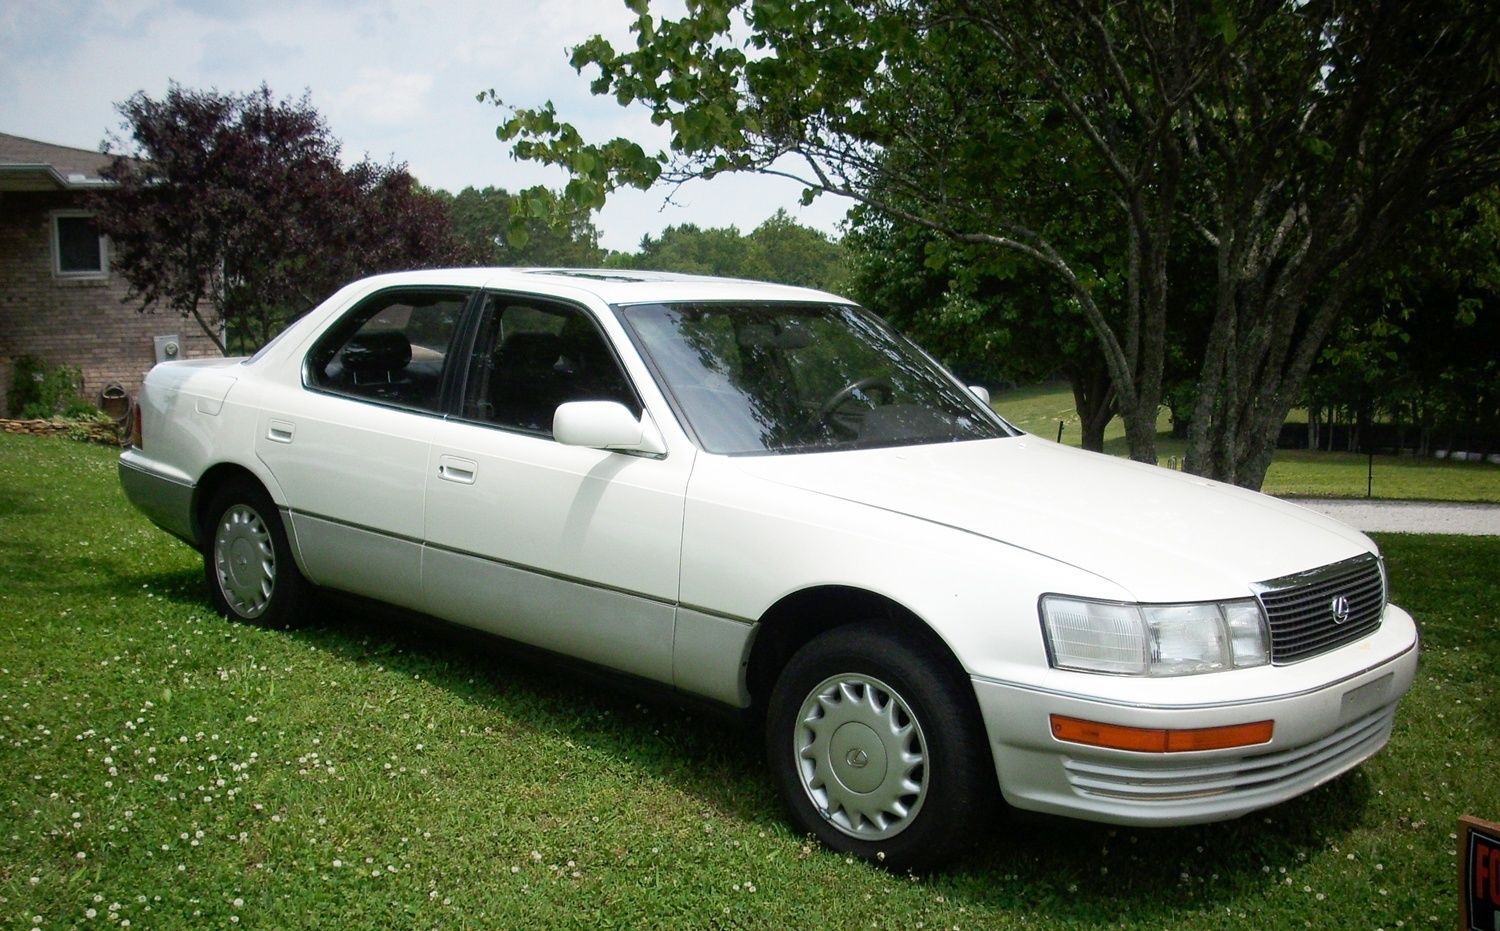 1991 Lexus Ls400 White Very Nice Condition Classic Lexus